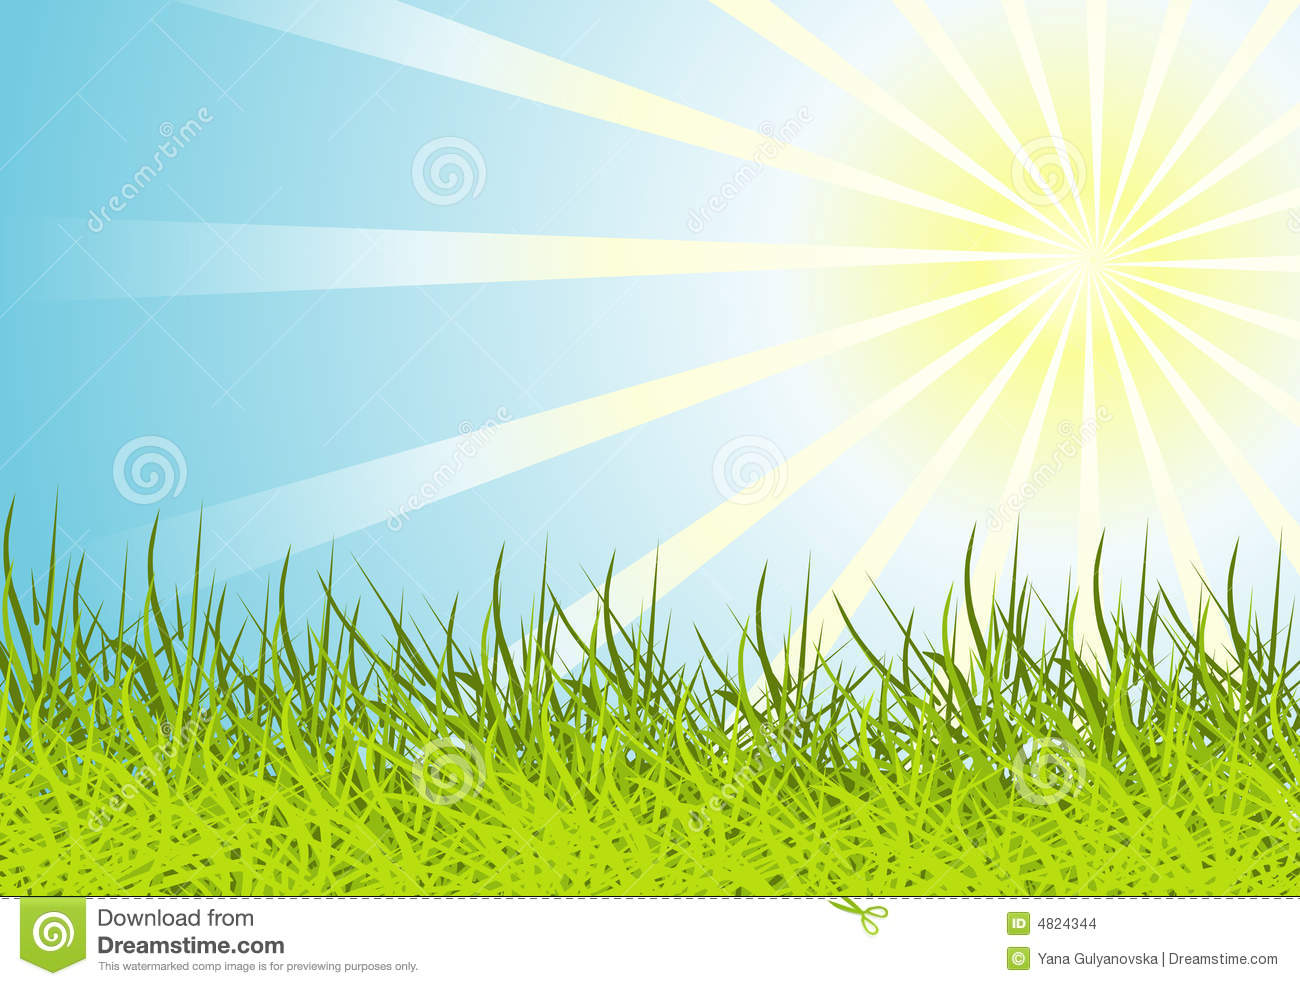 sun on the grass clipart - clipground